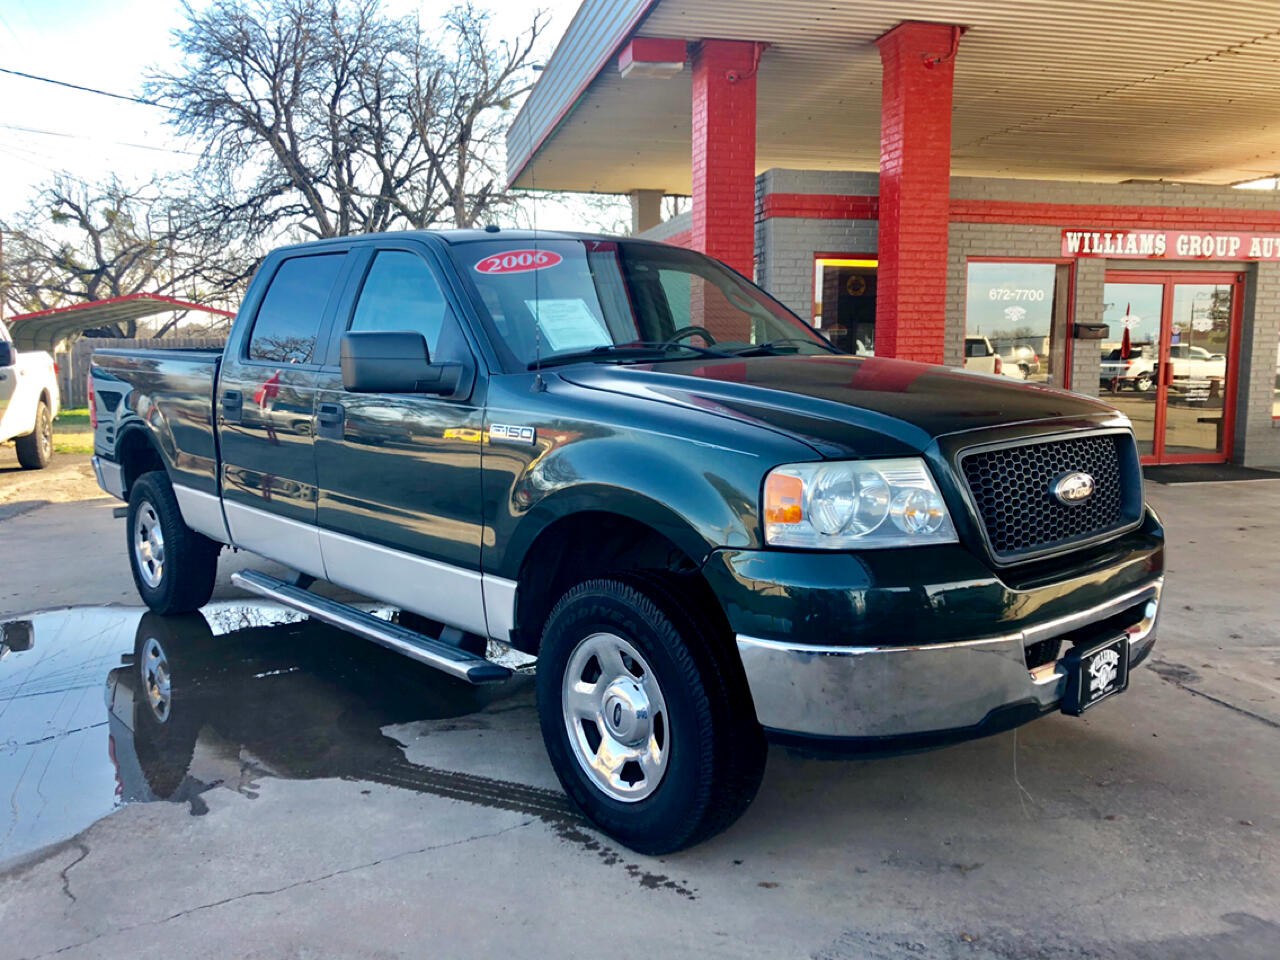 used 2006 ford f 150 supercrew xlt rwd for sale in abilene tx 79605 williams group auto. Black Bedroom Furniture Sets. Home Design Ideas